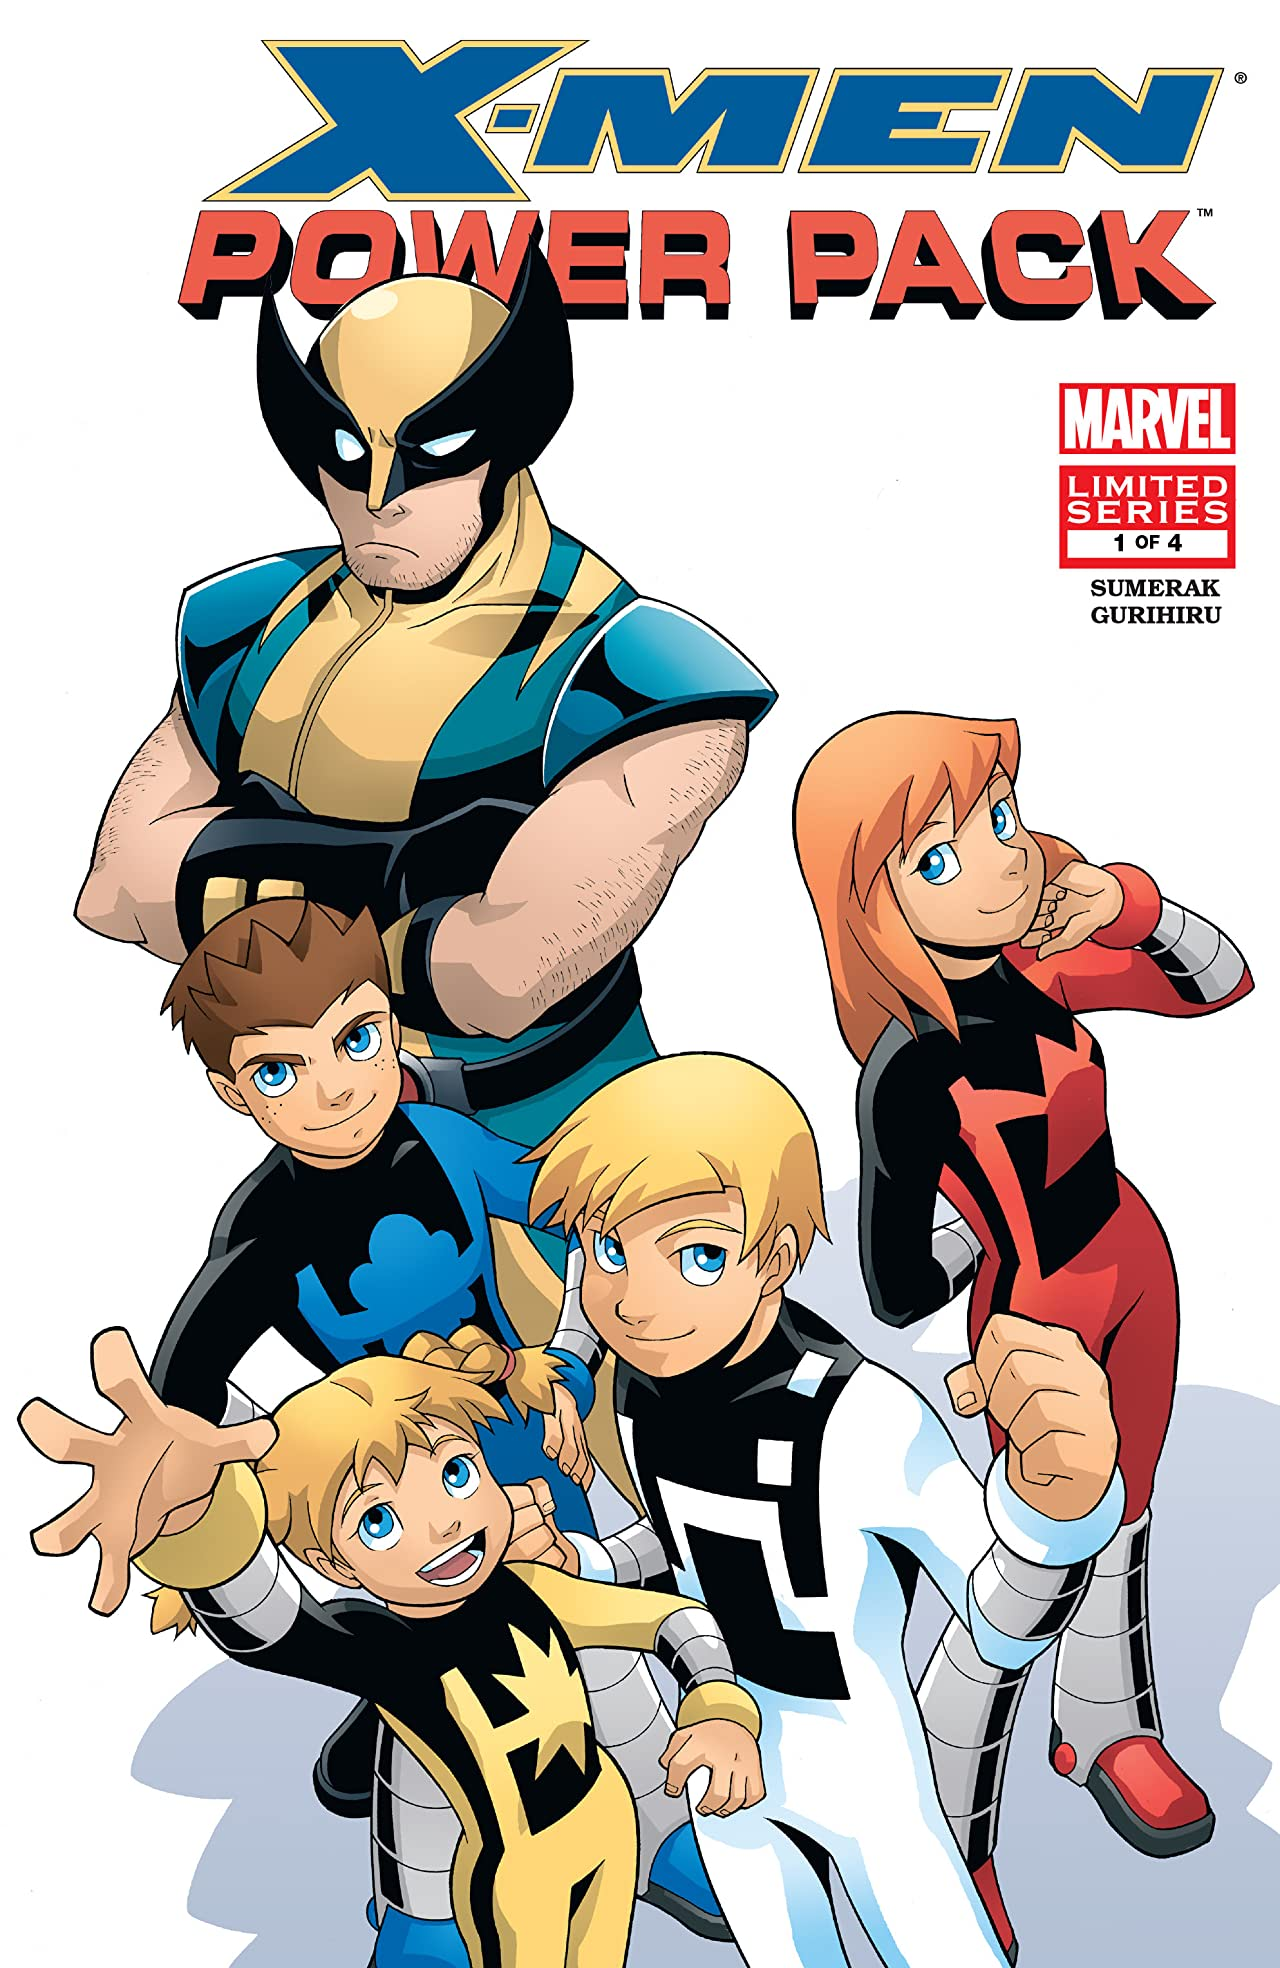 X-Men and Power Pack (2005-2006) #1 (of 4)